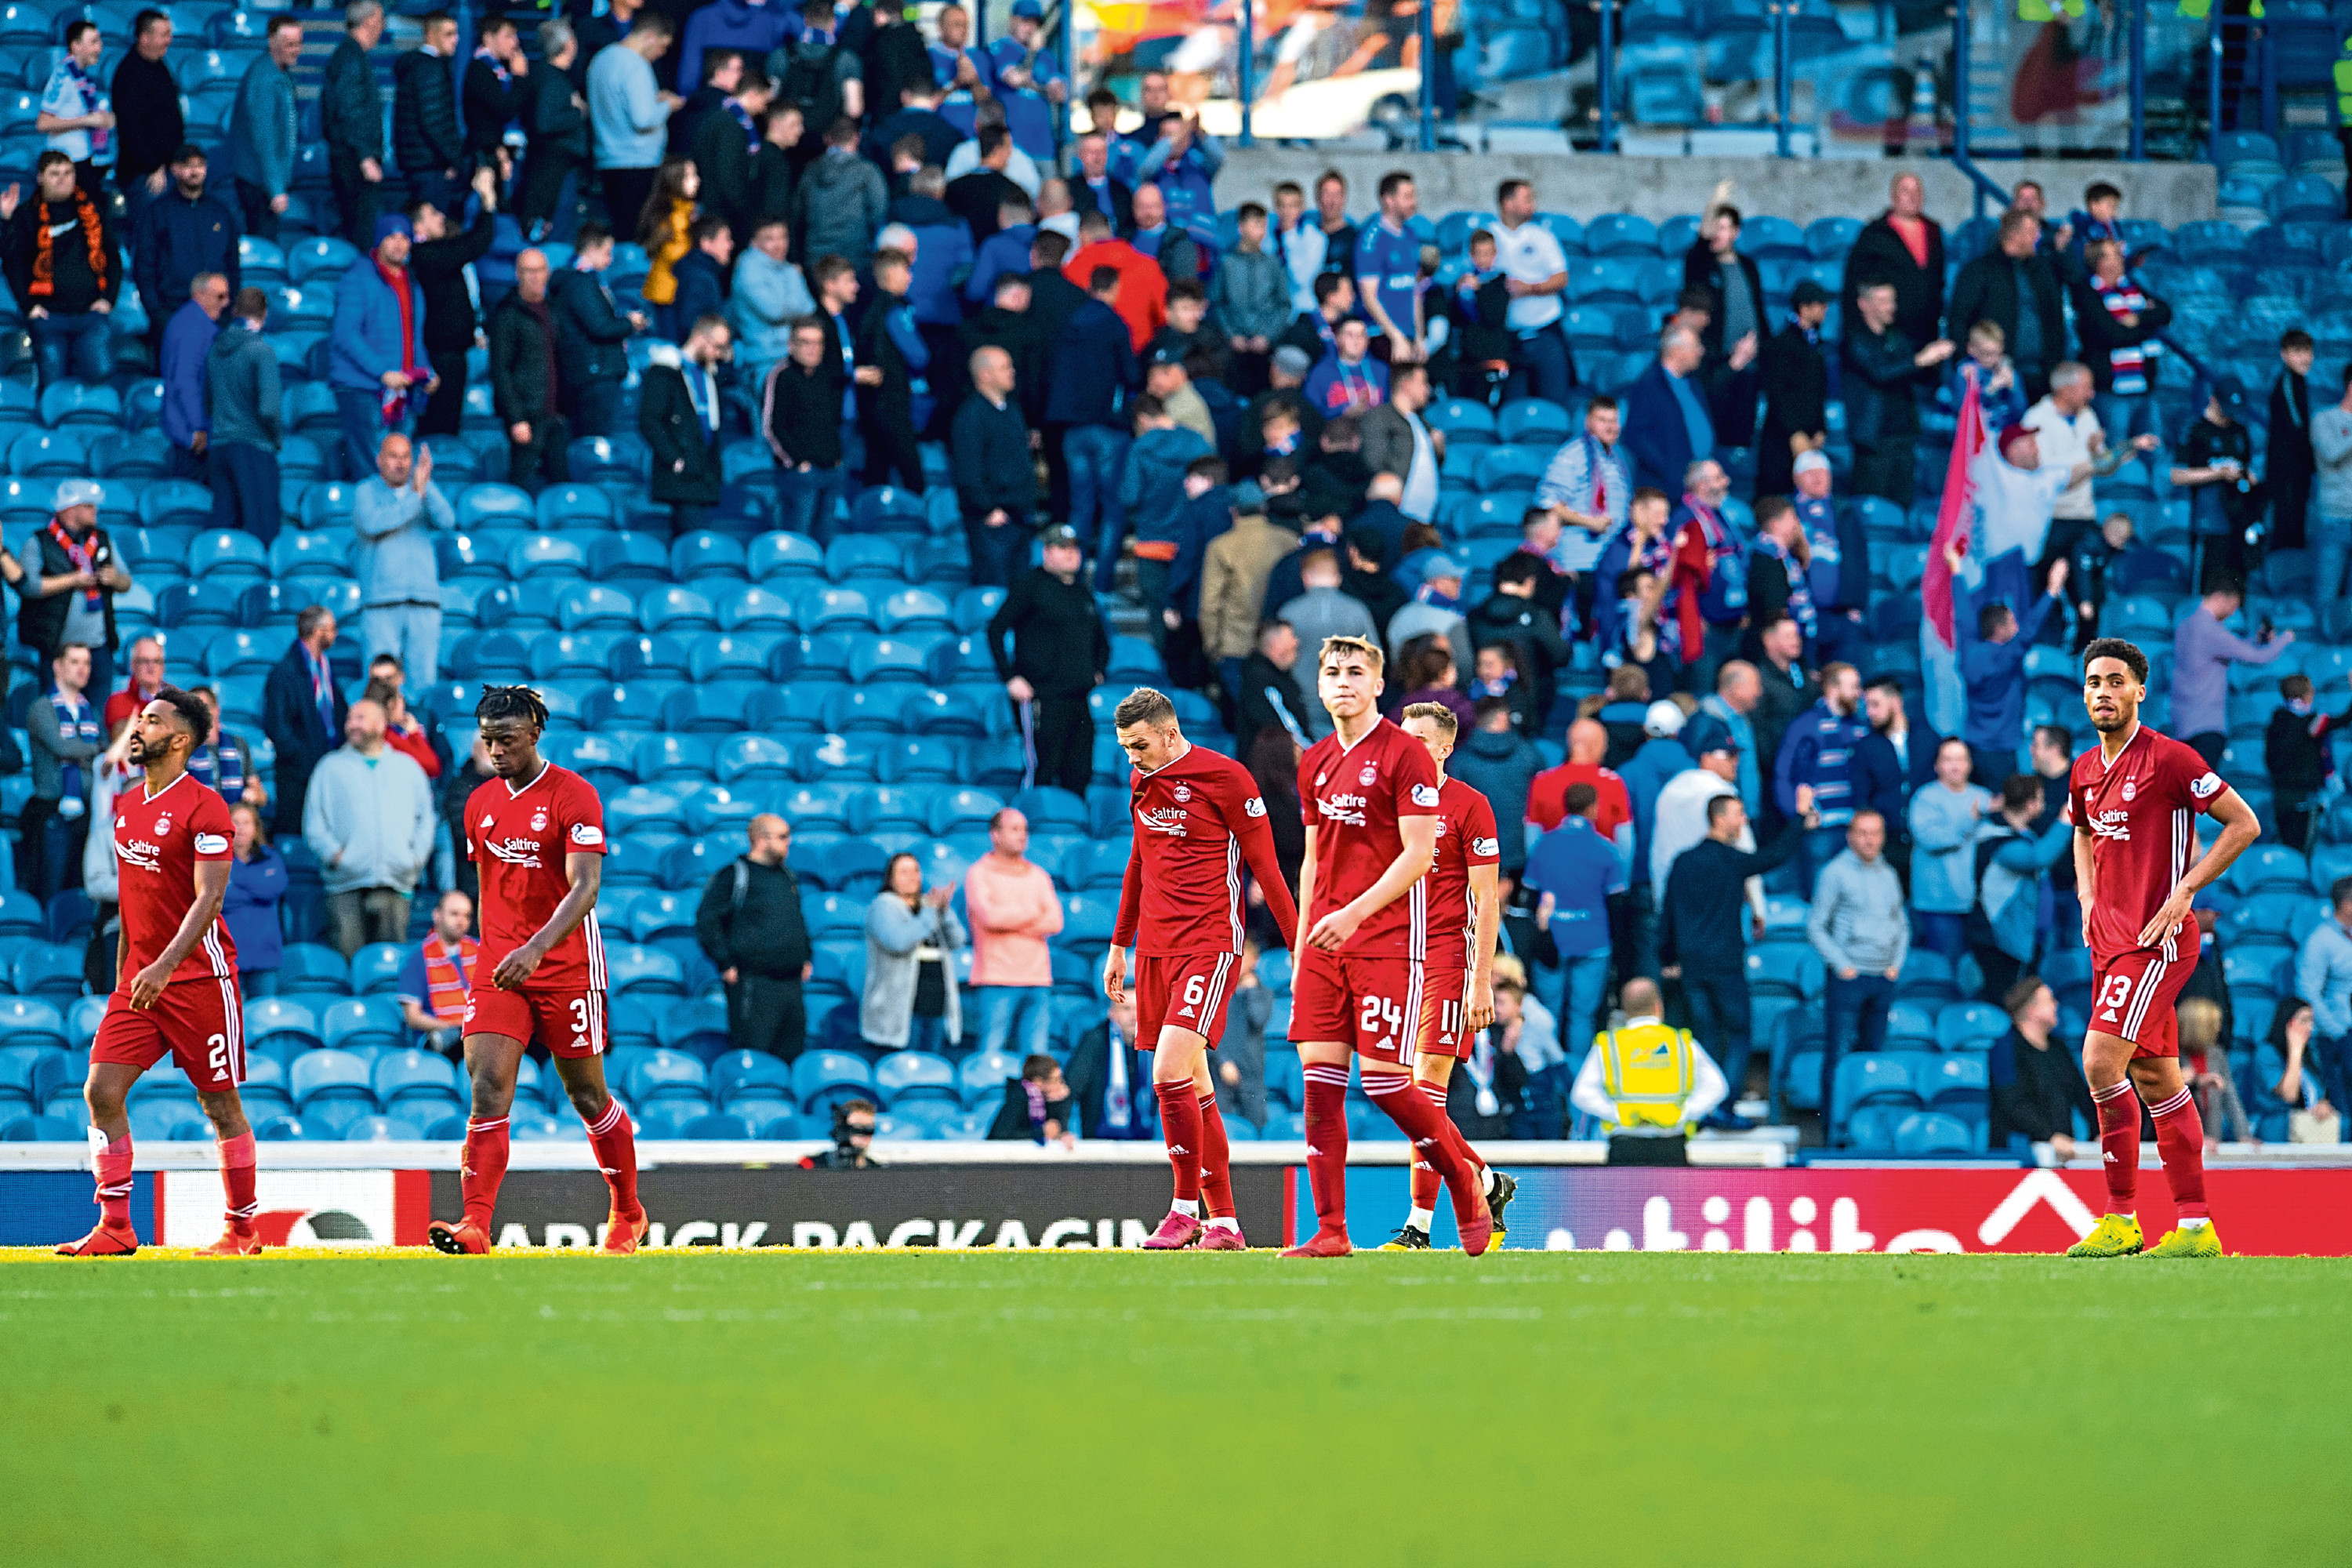 The Dons were beaten heavily in their previous visit to Ibrox earlier in the season.